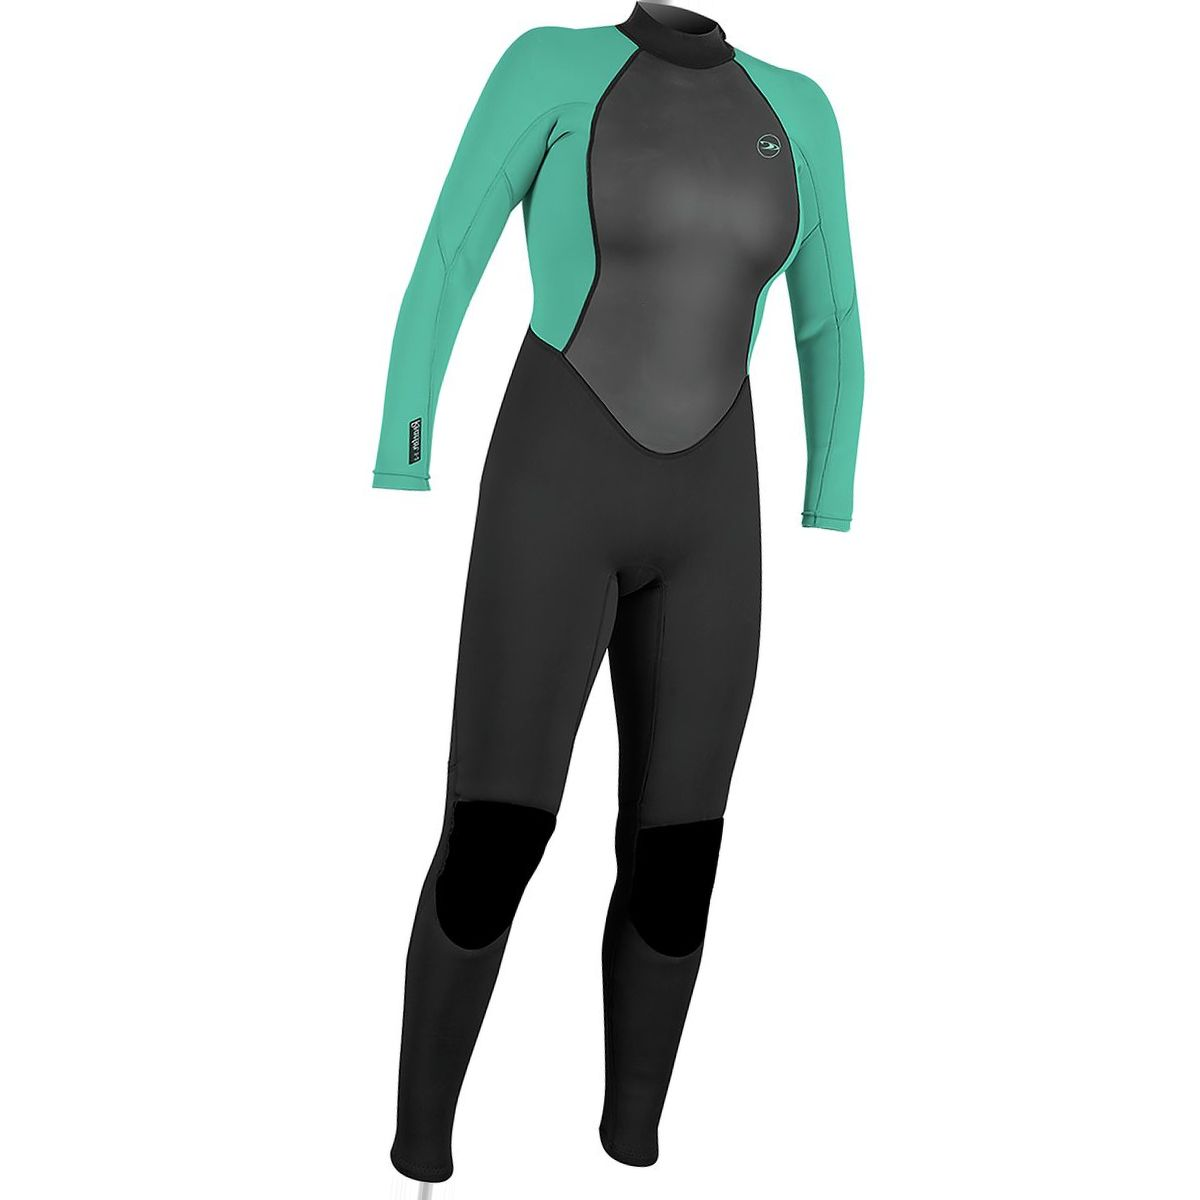 O'Neill Reactor II 3/2 Back-Zip Full Wetsuit - Women's